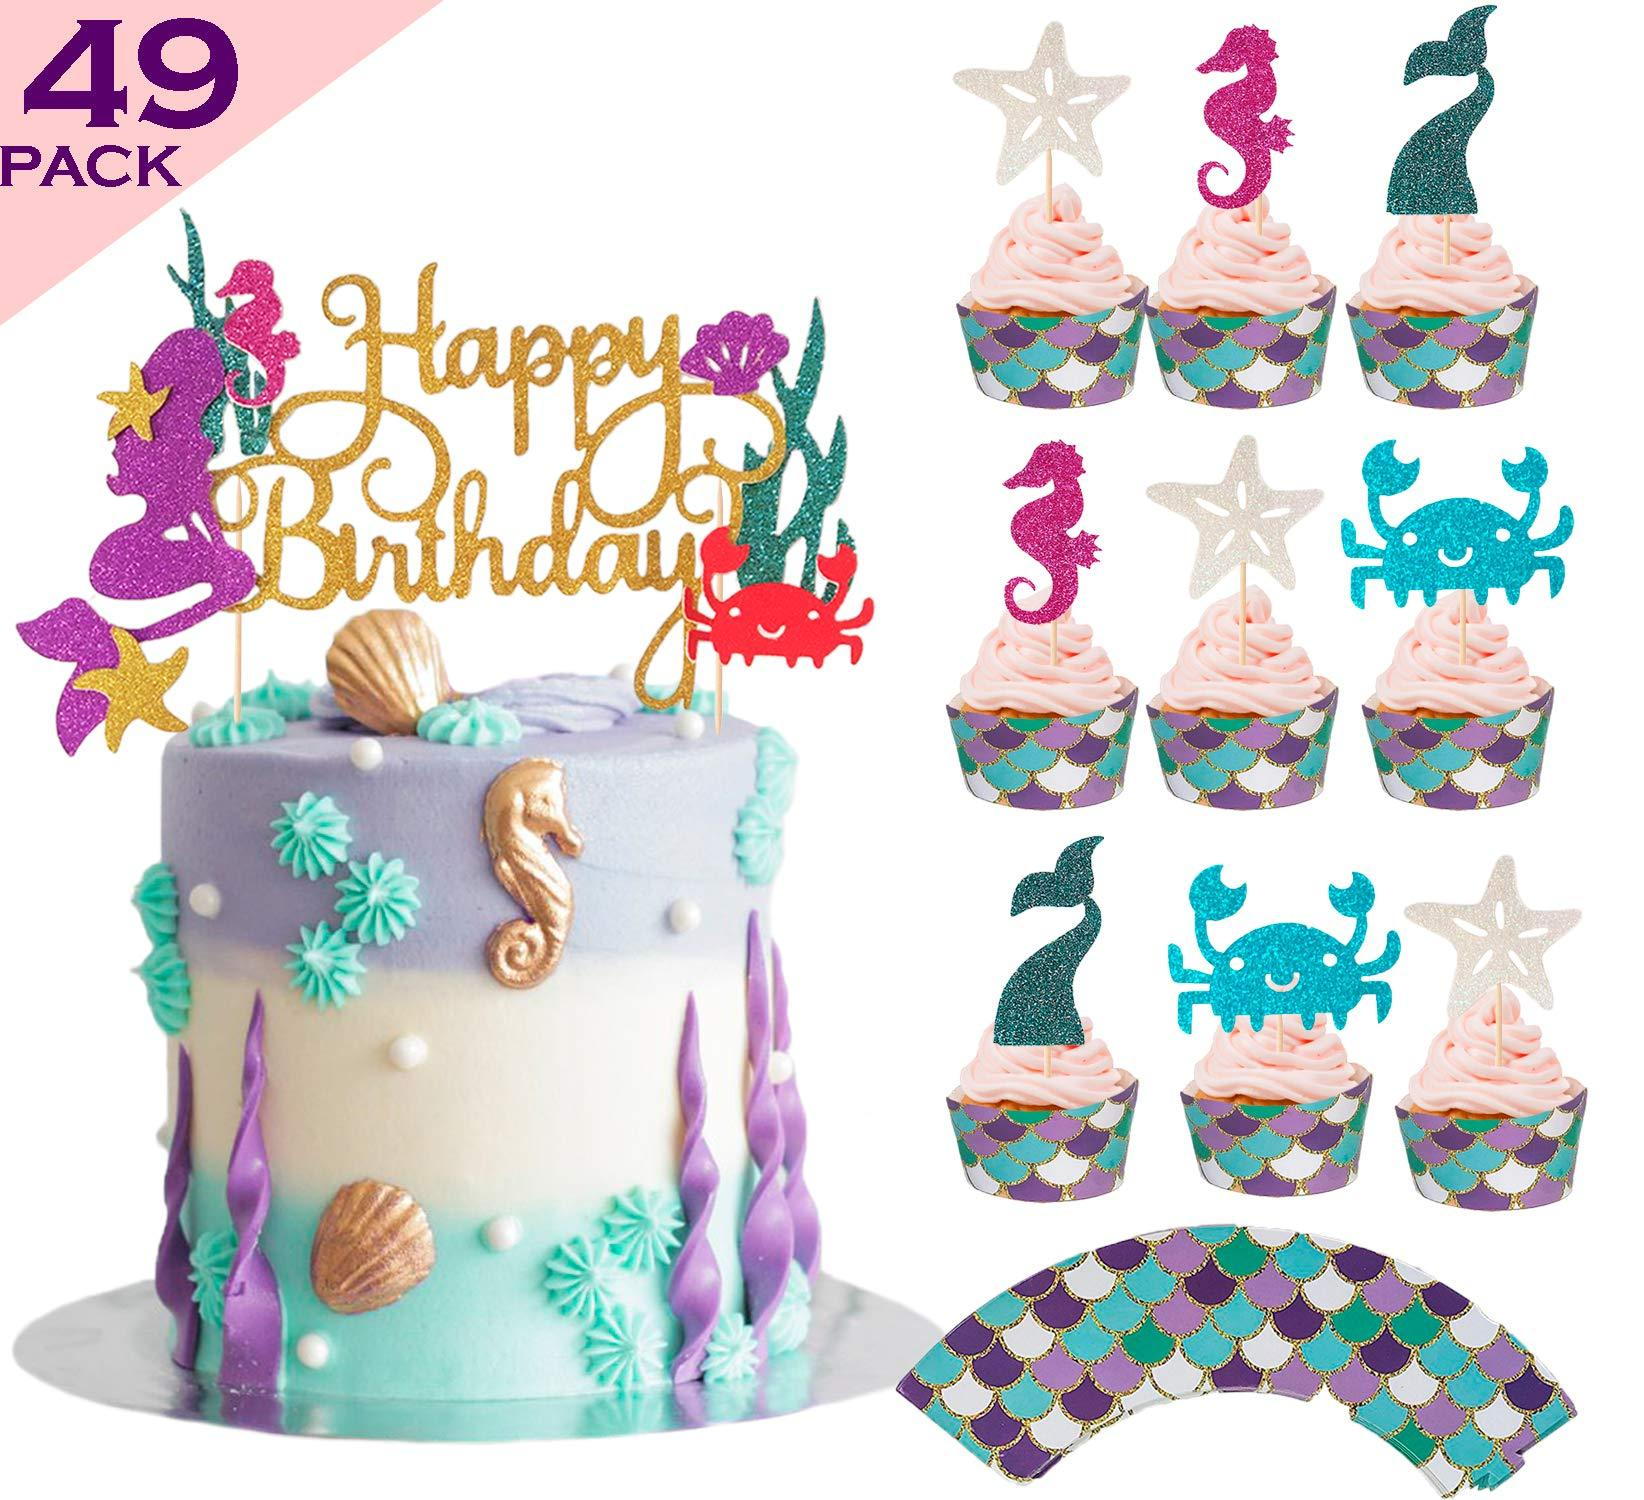 Bestus Mermaid Cake Topper Cupcake Toppers Wrappers 49pcs Kit Cake Decoration Set For Little Mermaid Party Theme Baby Shower Girls Birthday Mermaid Party Supplies Walmart Com Walmart Com